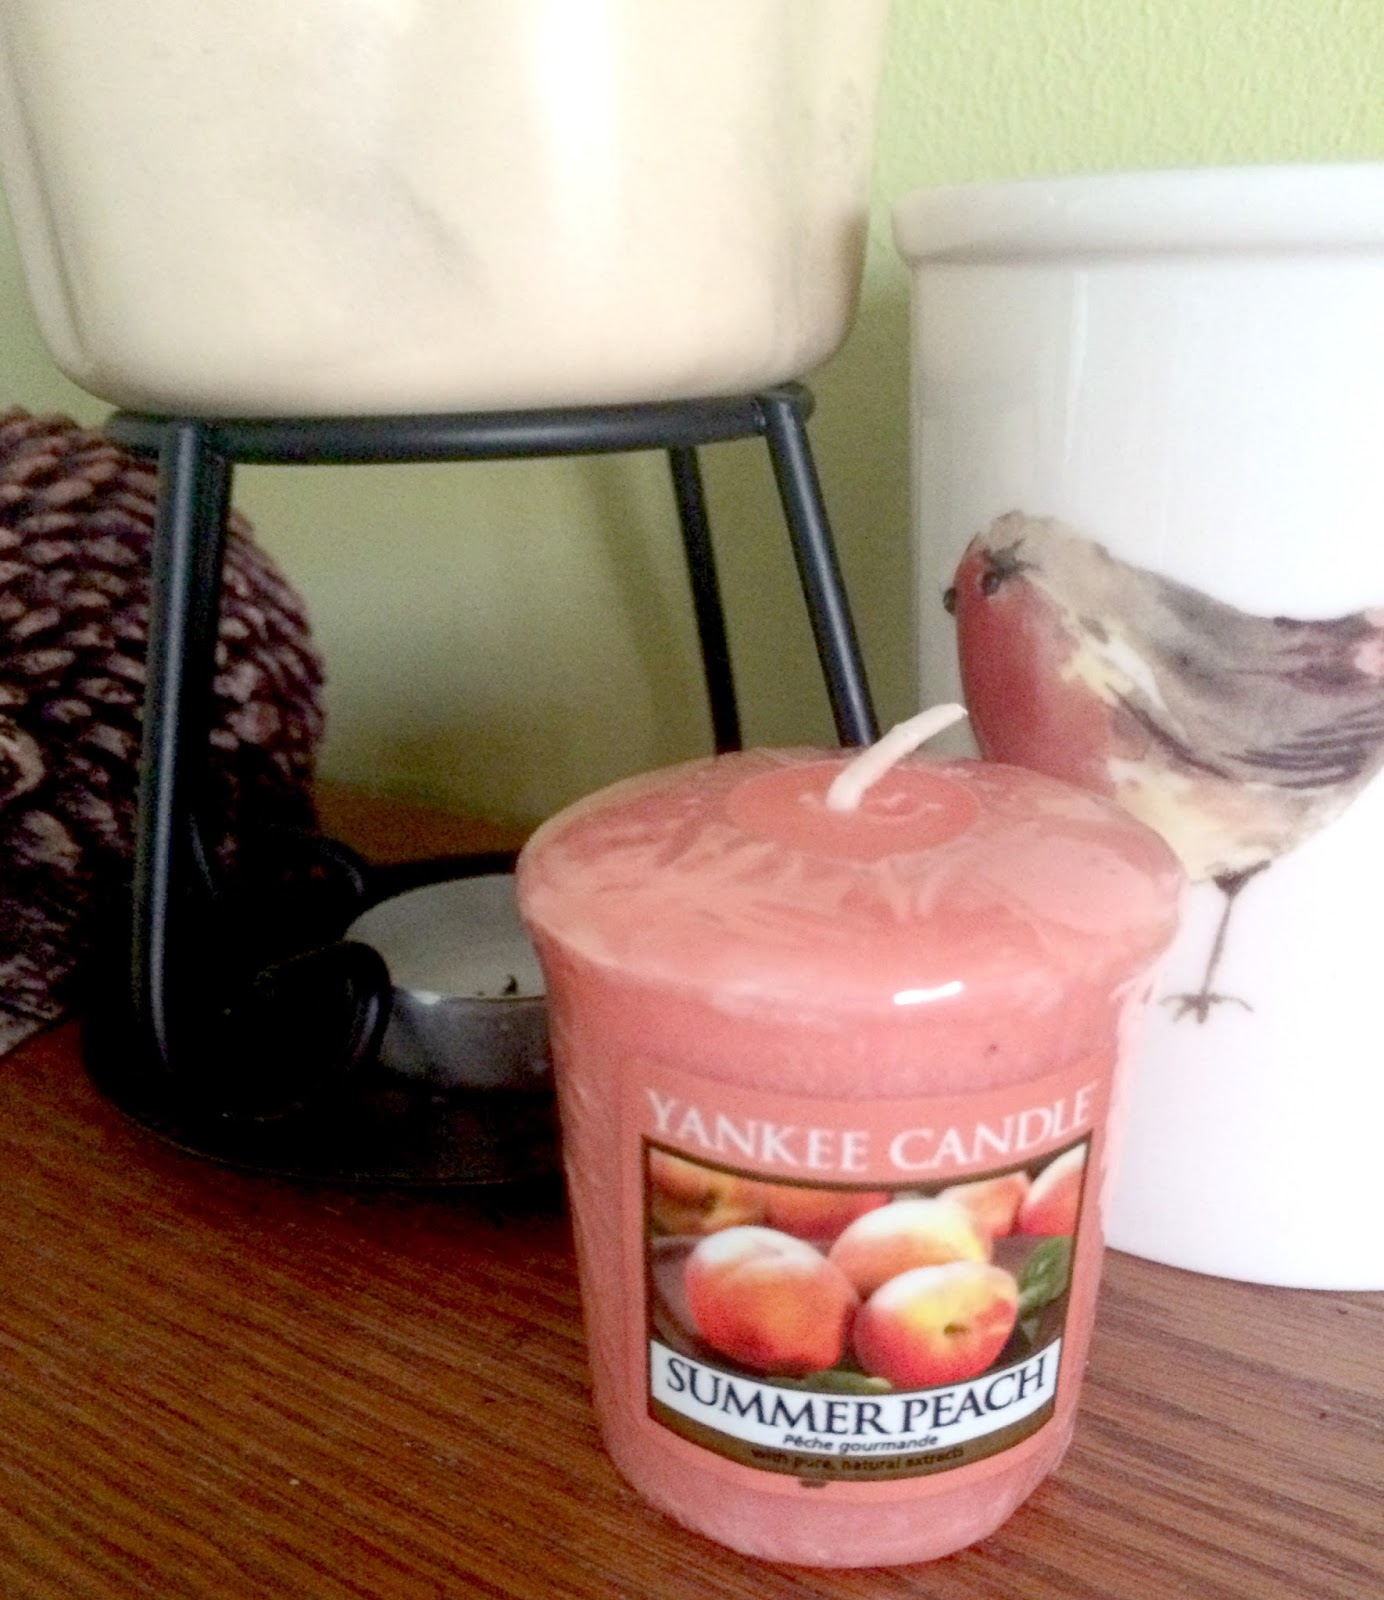 Yankee candles summer peach review